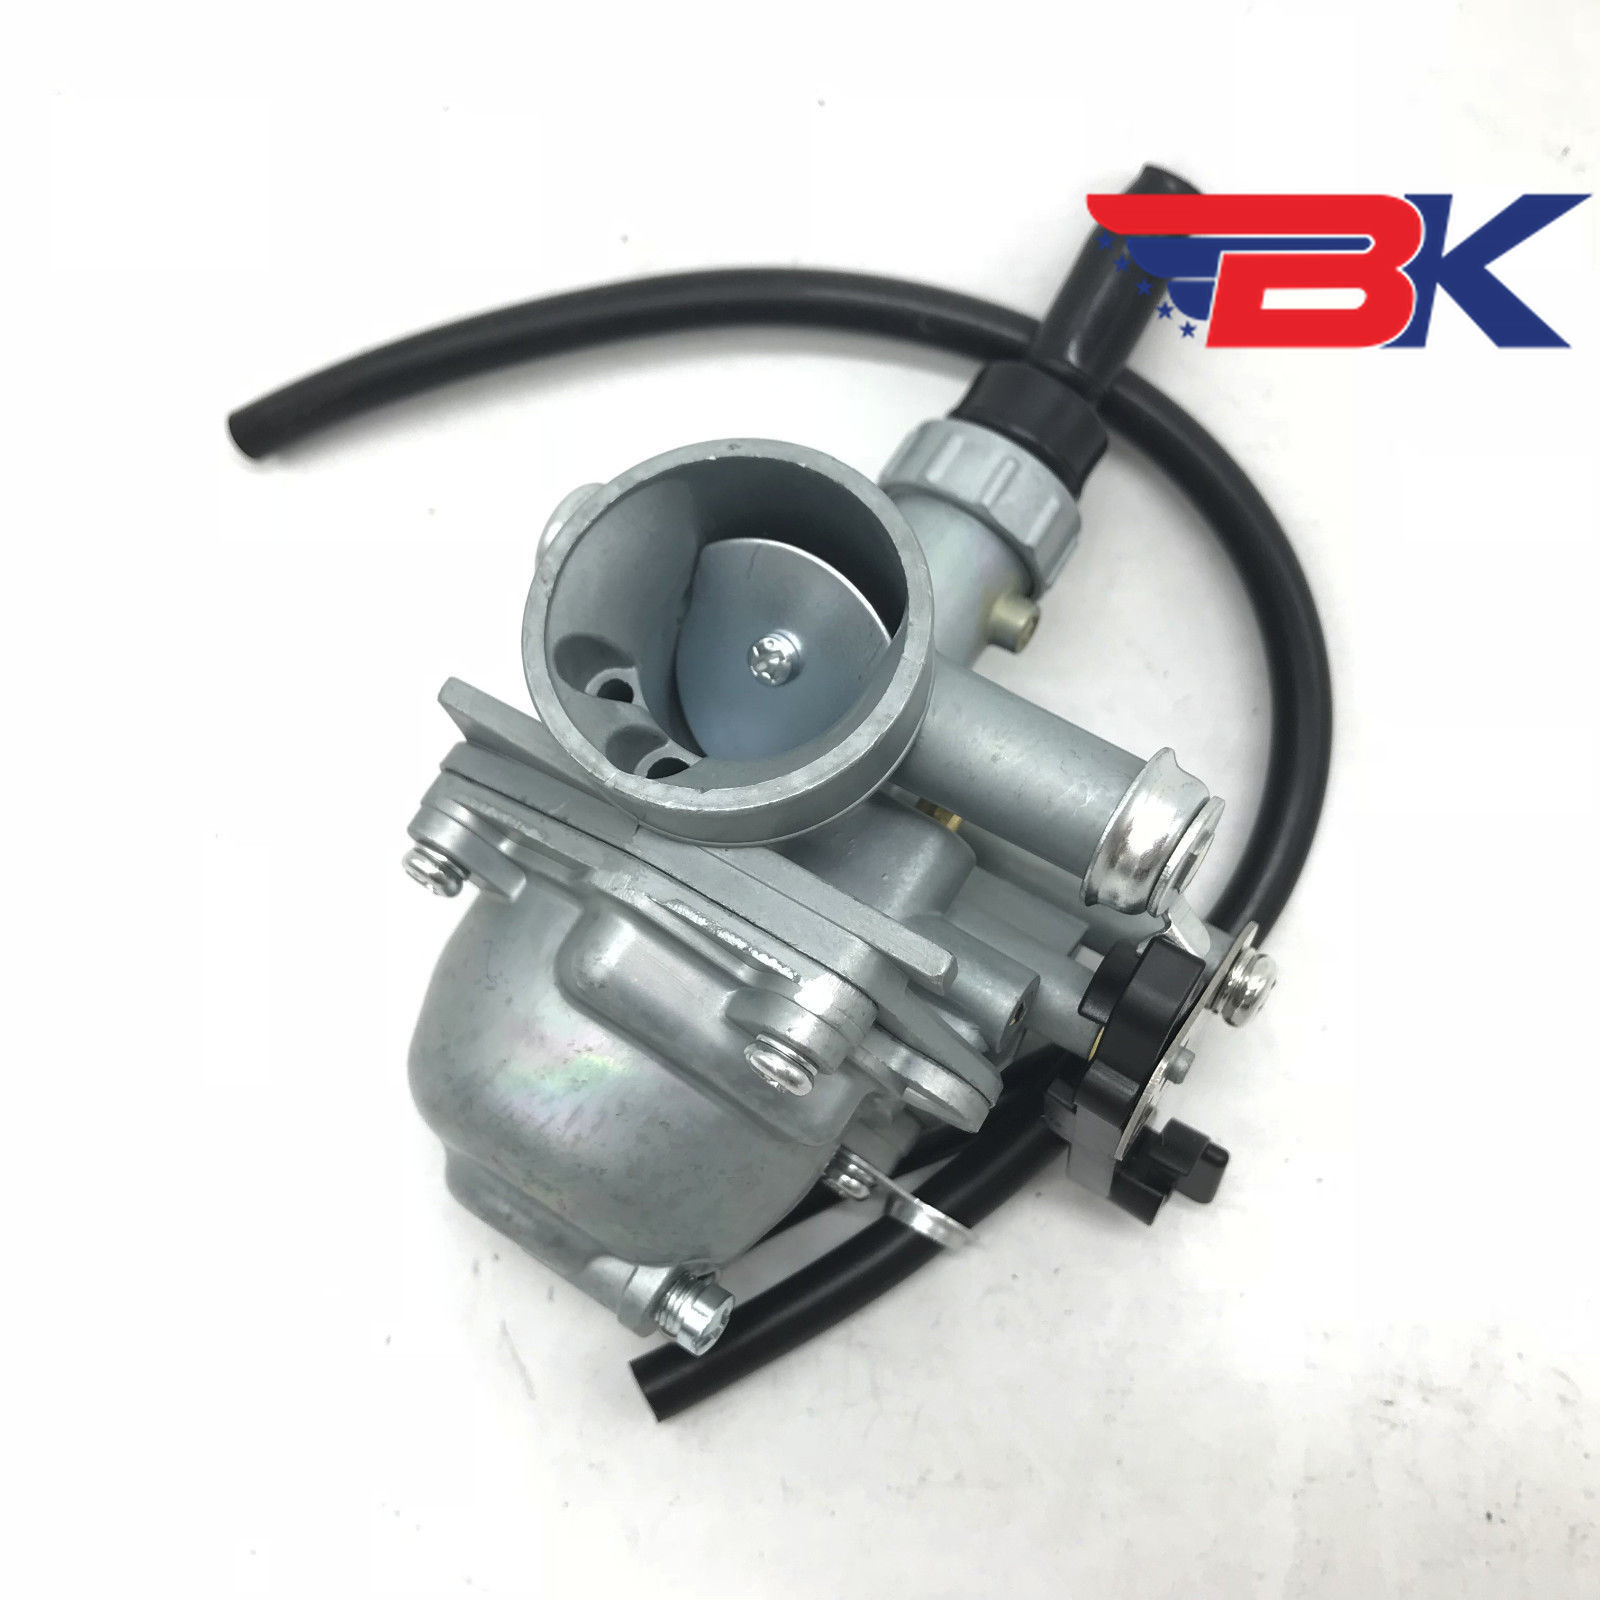 Atv Parts & Accessories Atv,rv,boat & Other Vehicle Reliable Vm16 Mikuni Carby 50cc 70cc 110 125cc Pit Dirt Bike Atv Scooter 19mm Z50 Dax Carb Carburetor